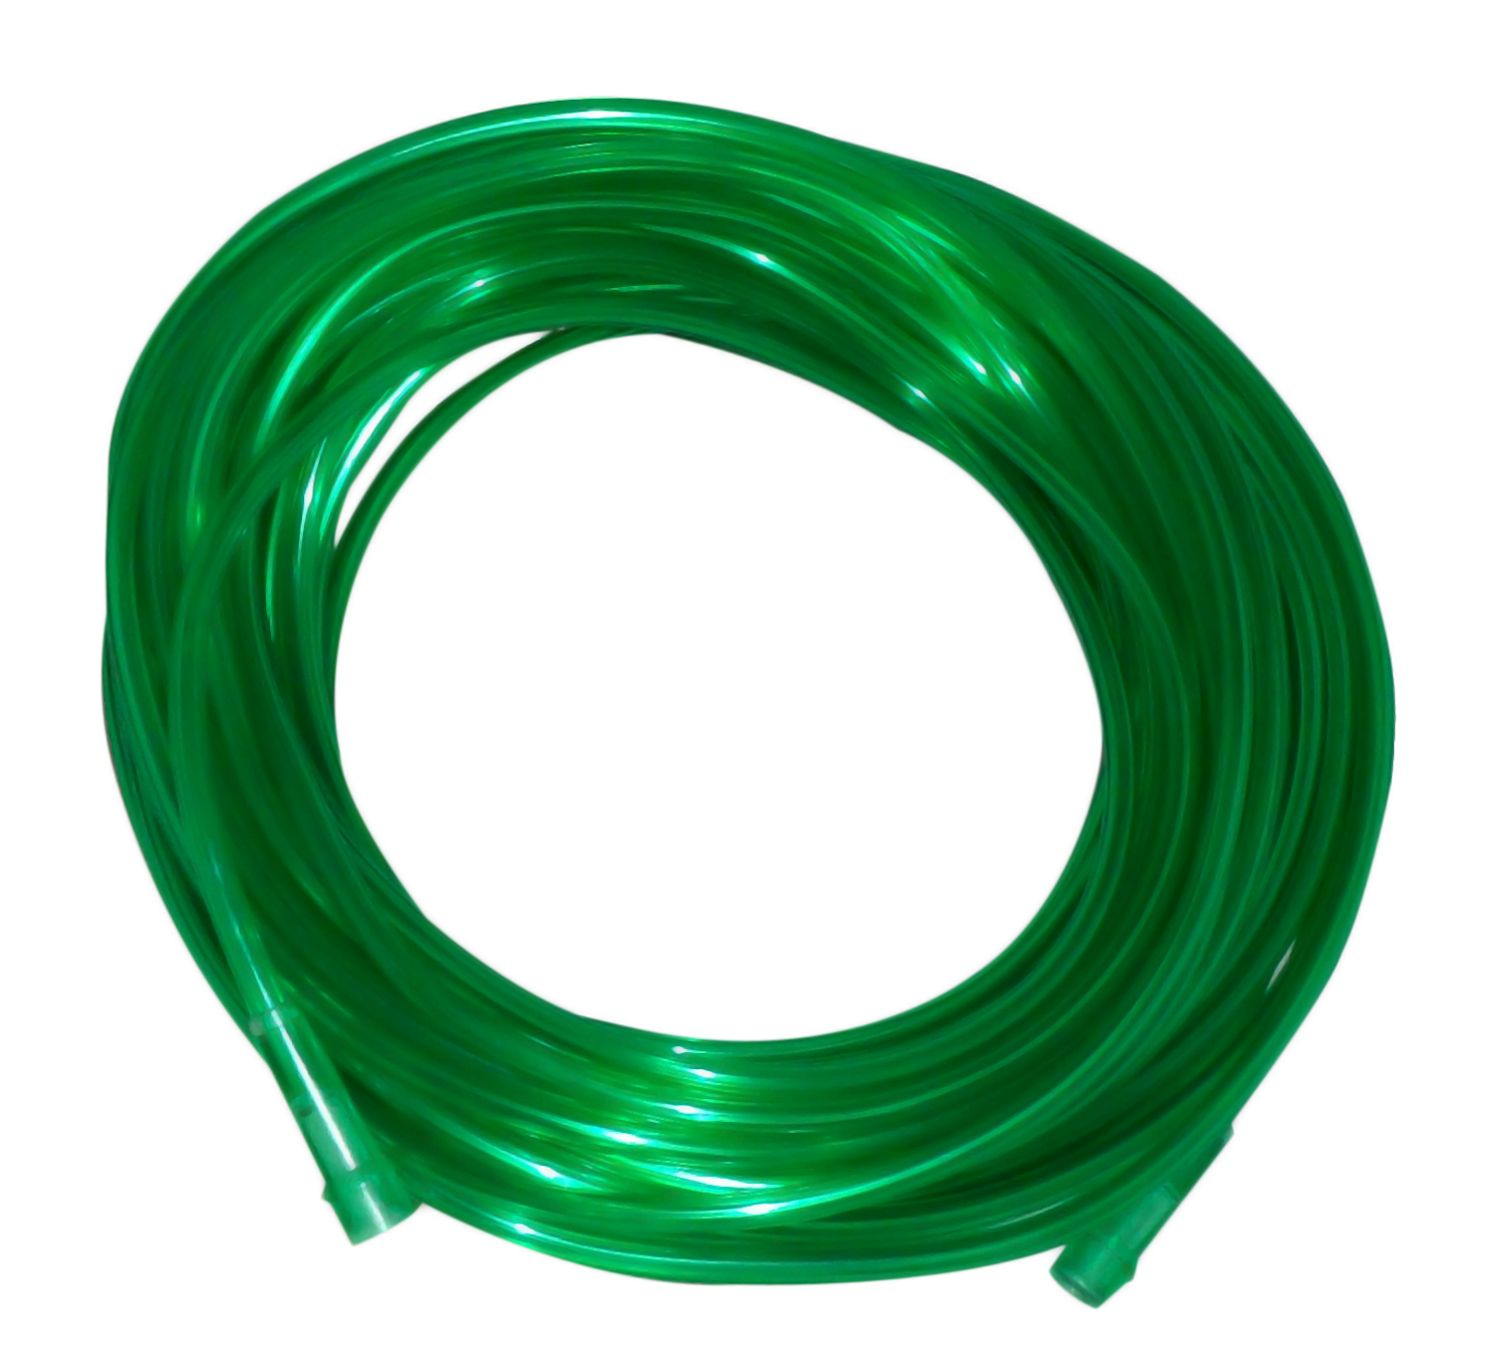 MCT-07G-CTN Three-channel Safety Oxygen Supply Tubing (50 Pack) product photo